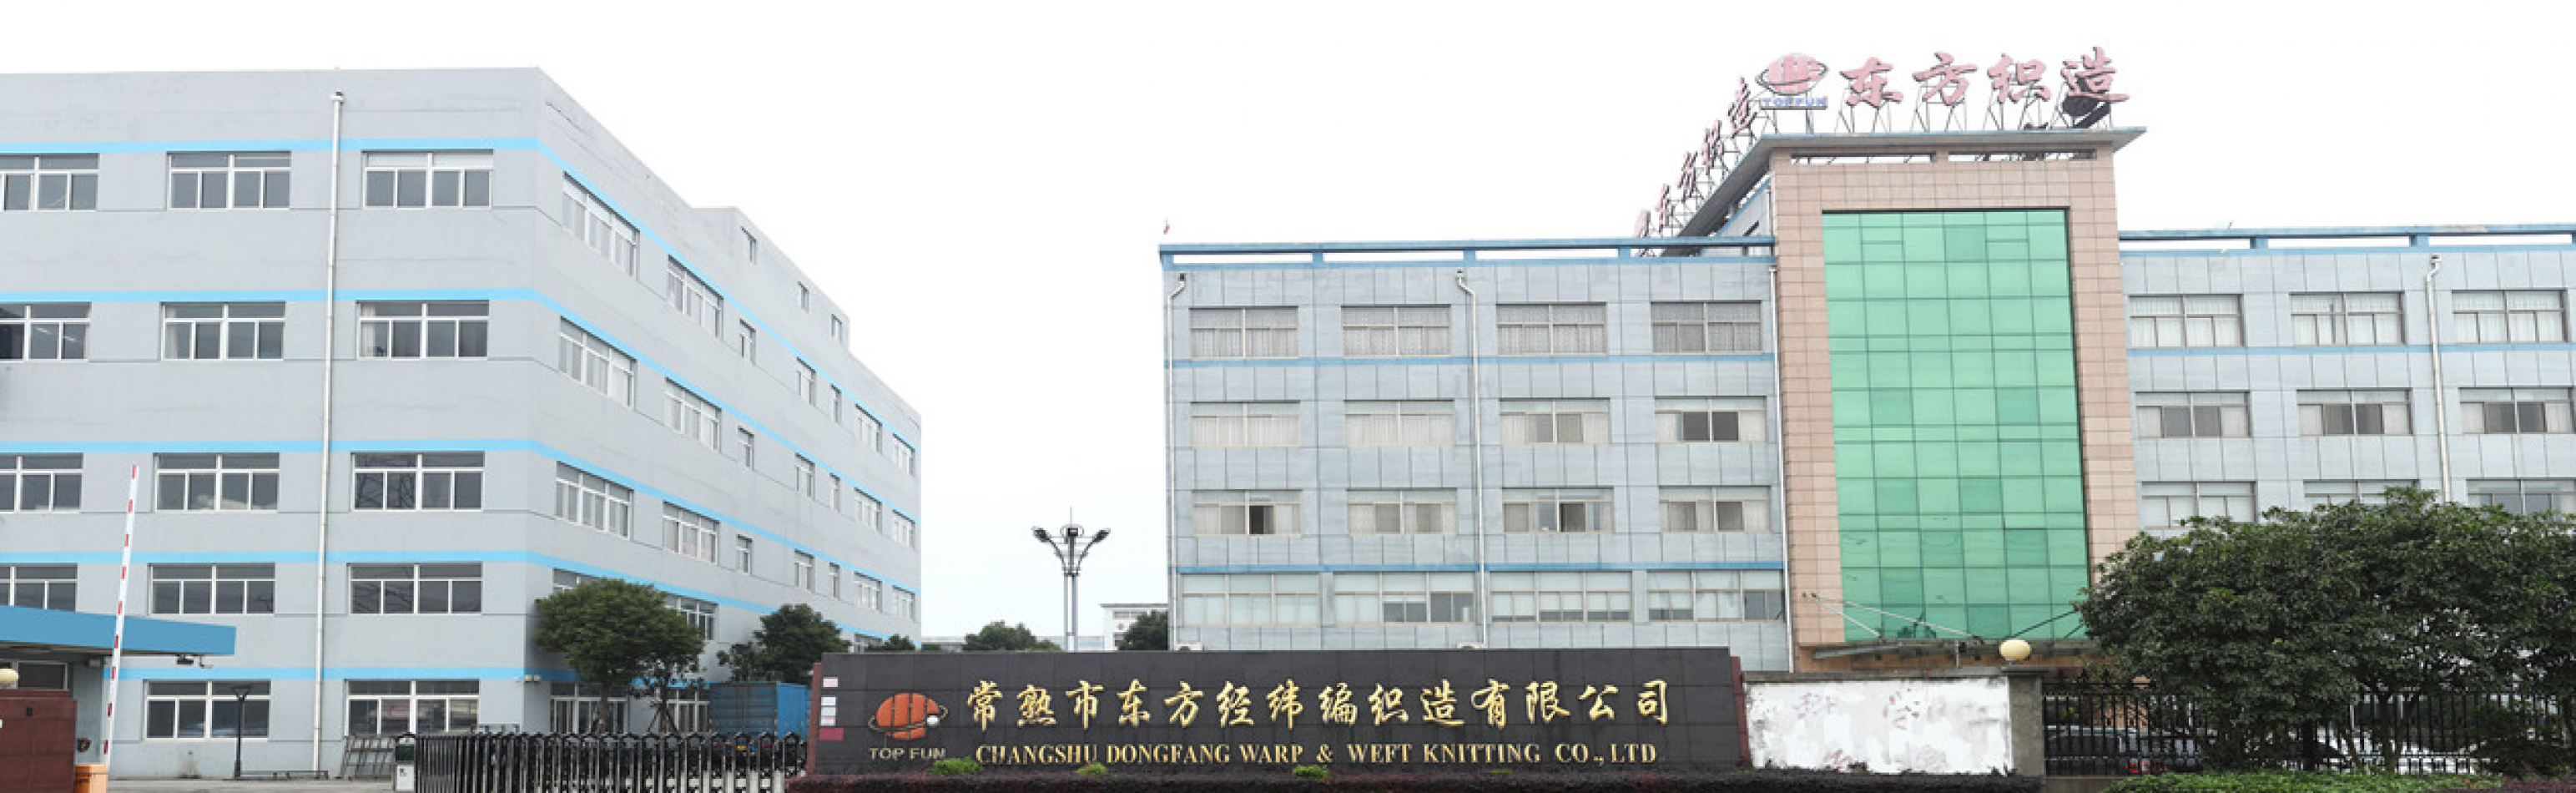 CHANGSHU DONGFANG WARP AND WEFT KNITTING CO.,LTD.